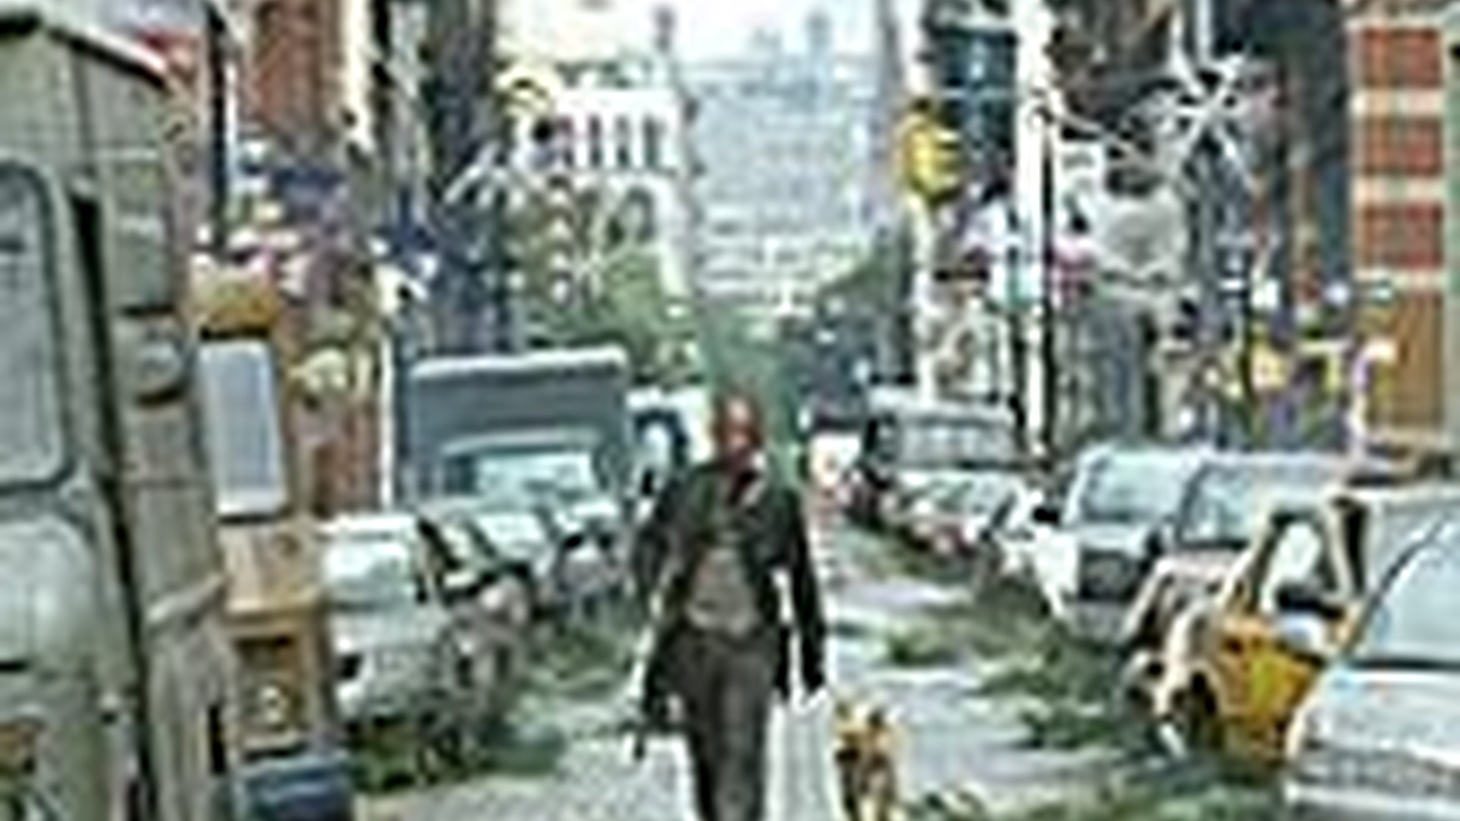 So you're the last human being in New York City--maybe on earth. That's not good since you're a social animal and you can hardly hang out with the hordes of murderous zombies, who emerge from their dark hives every night. On the other hand you've got the city to yourself in the daytime. No gridlock, no pickpockets, no bicycle messengers to dodge. Such is the plight of Will Smith in I Am Legend...